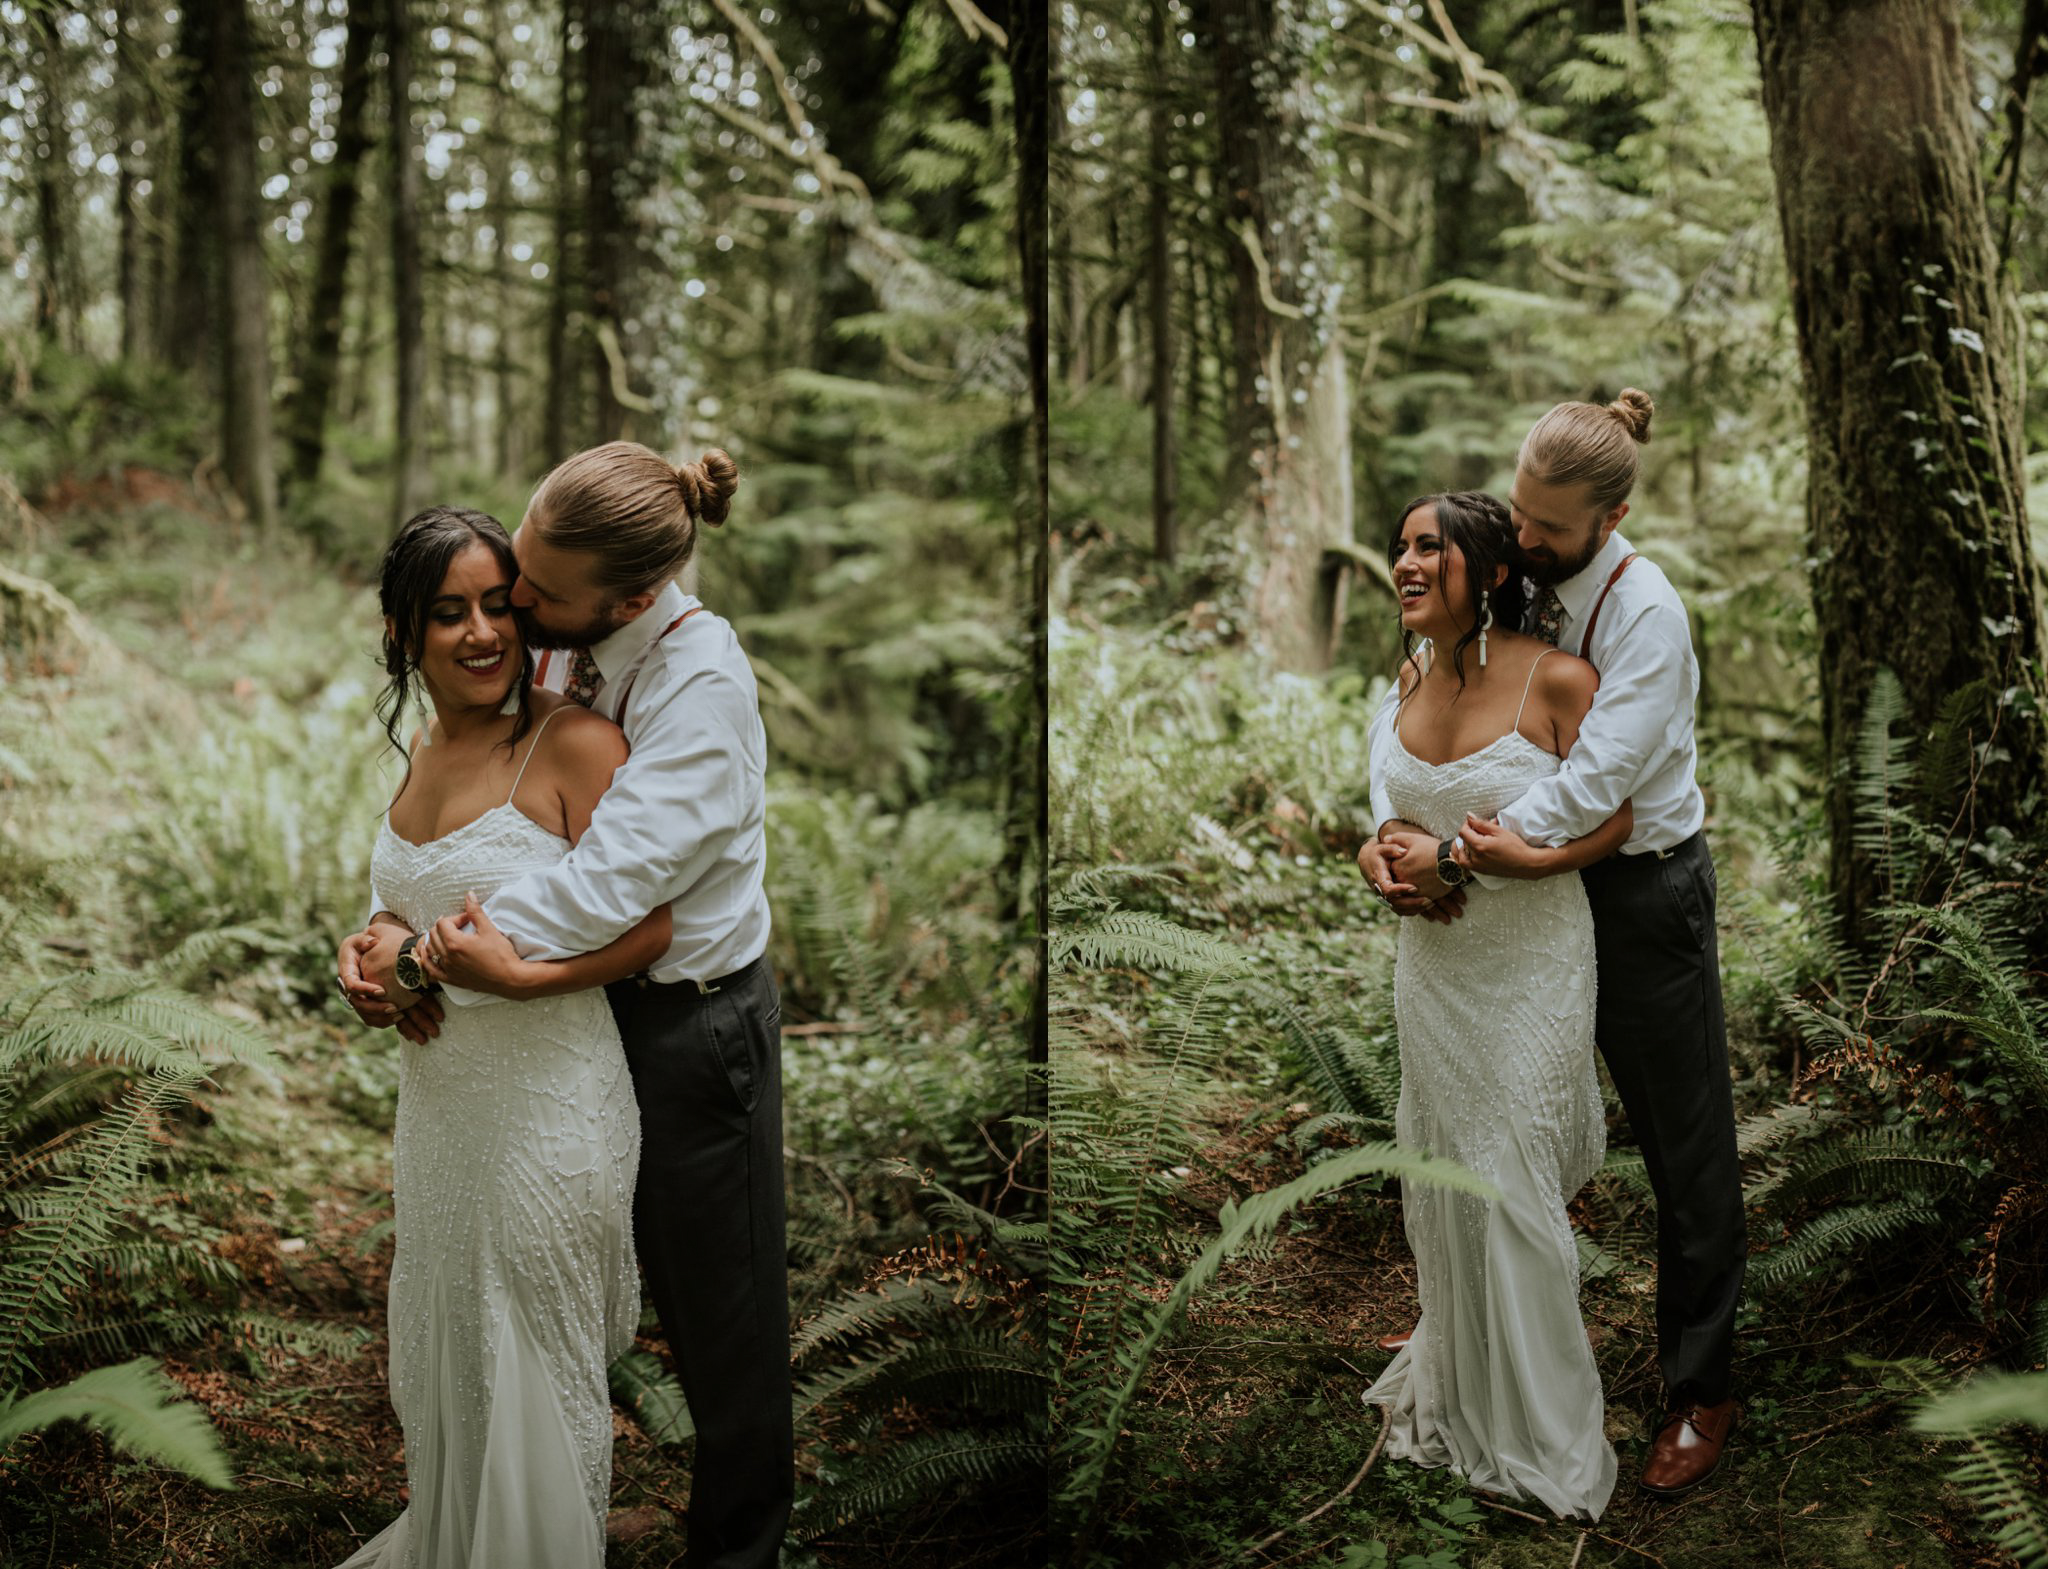 intimate-boho-campfire-wedding-shangri-la-on-the-green-seattle-wedding-photographer-caitlyn-nikula-photography-74.jpg